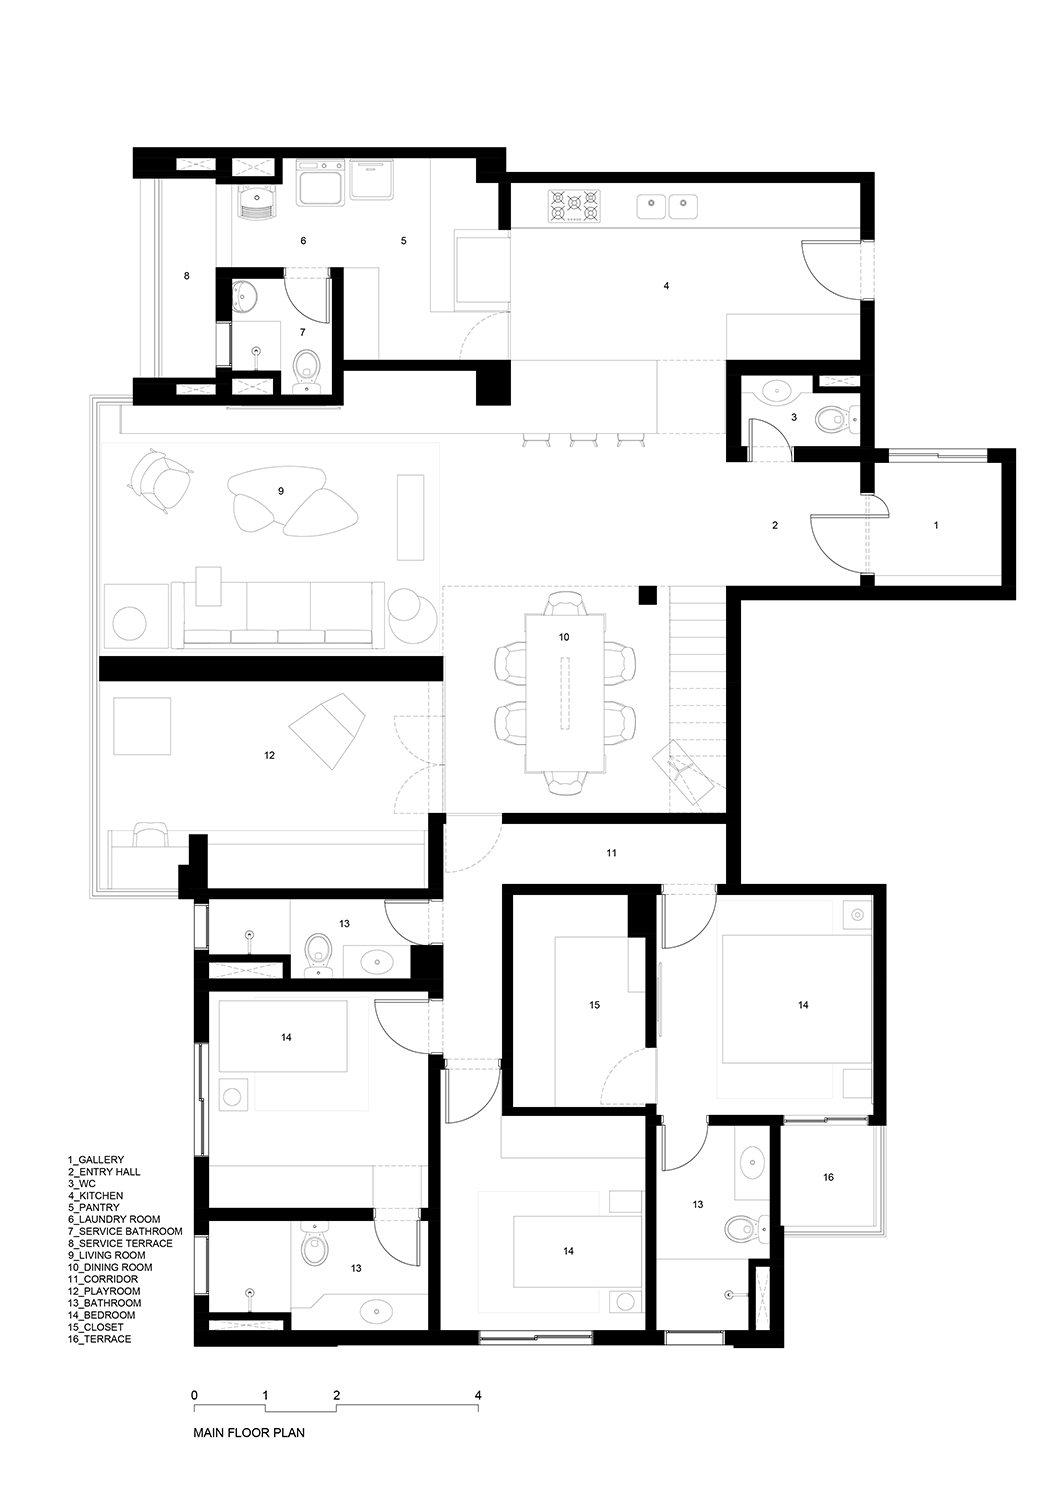 Main floor plan FCstudio}